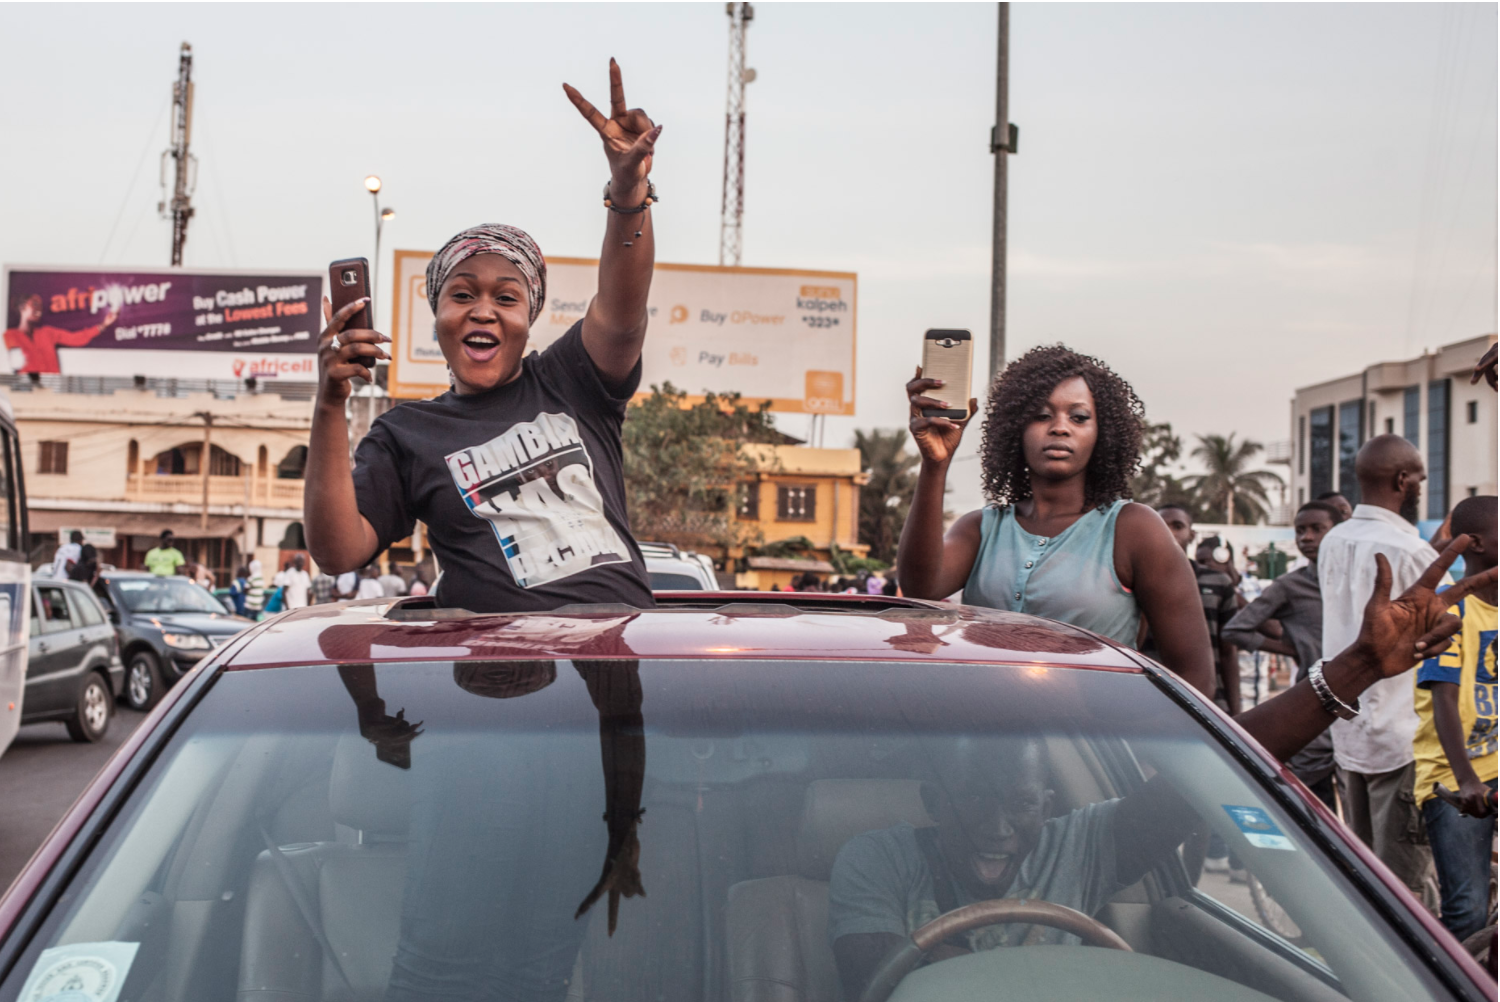 #GambiaHasDecided - supporters of the new President Adama Barrow, The Gambia © Jason Florio